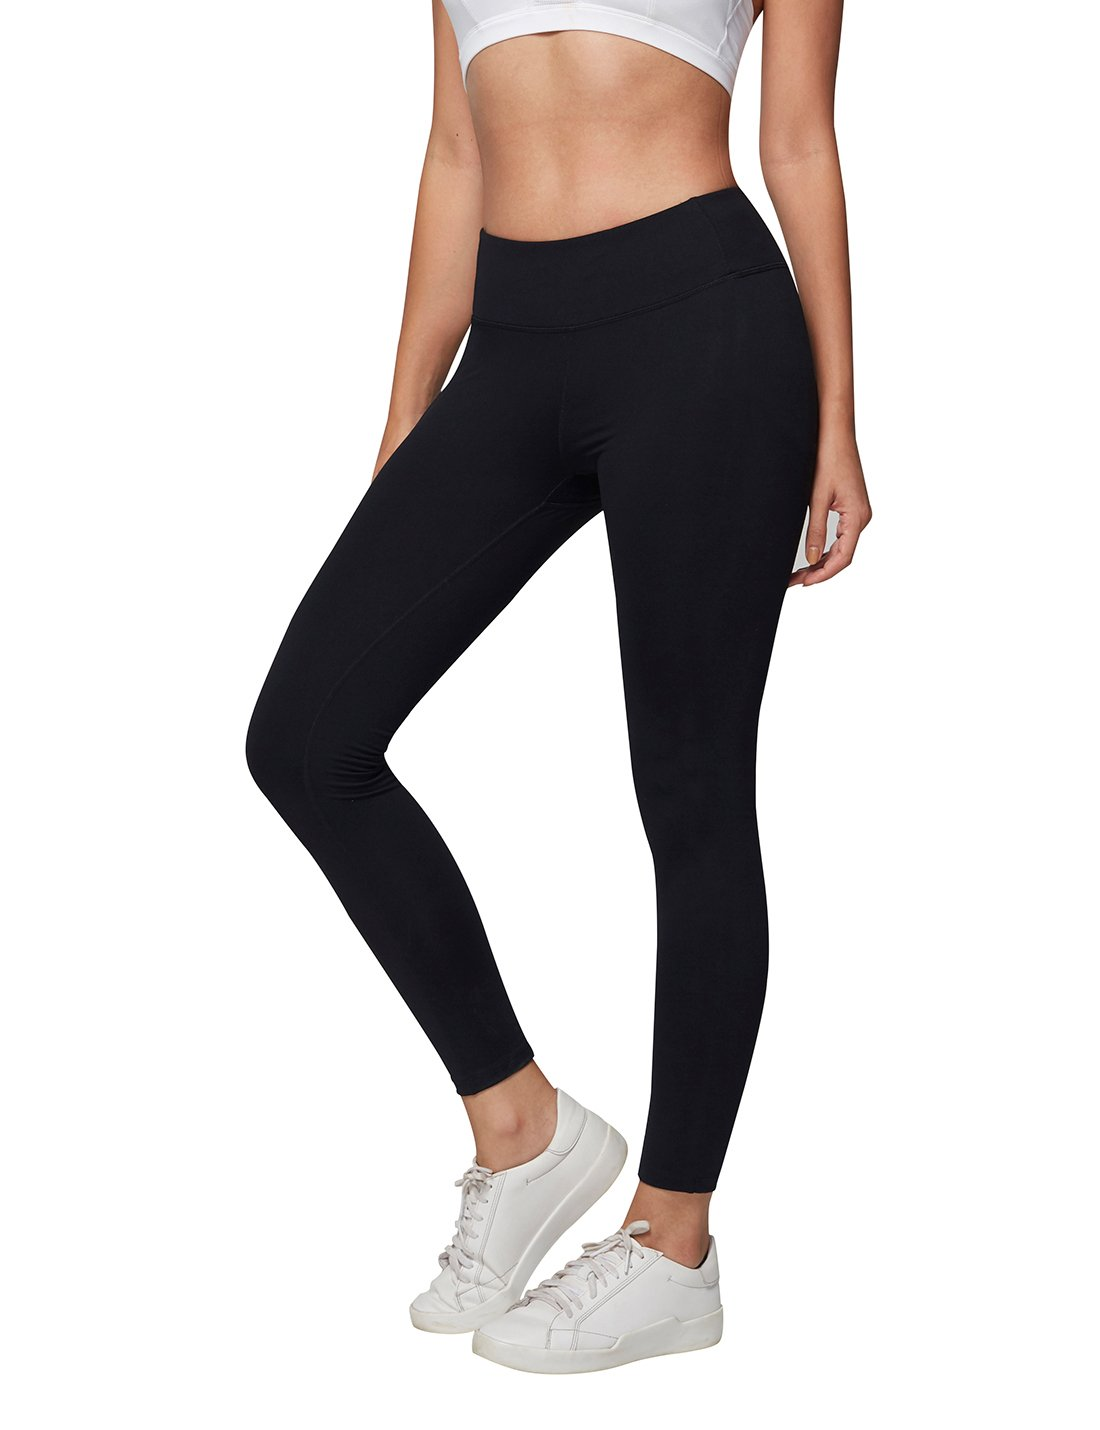 AJISAI Womens Workout Leggings High Waist Tummy Control Yoga Running Pants Color Black Size M